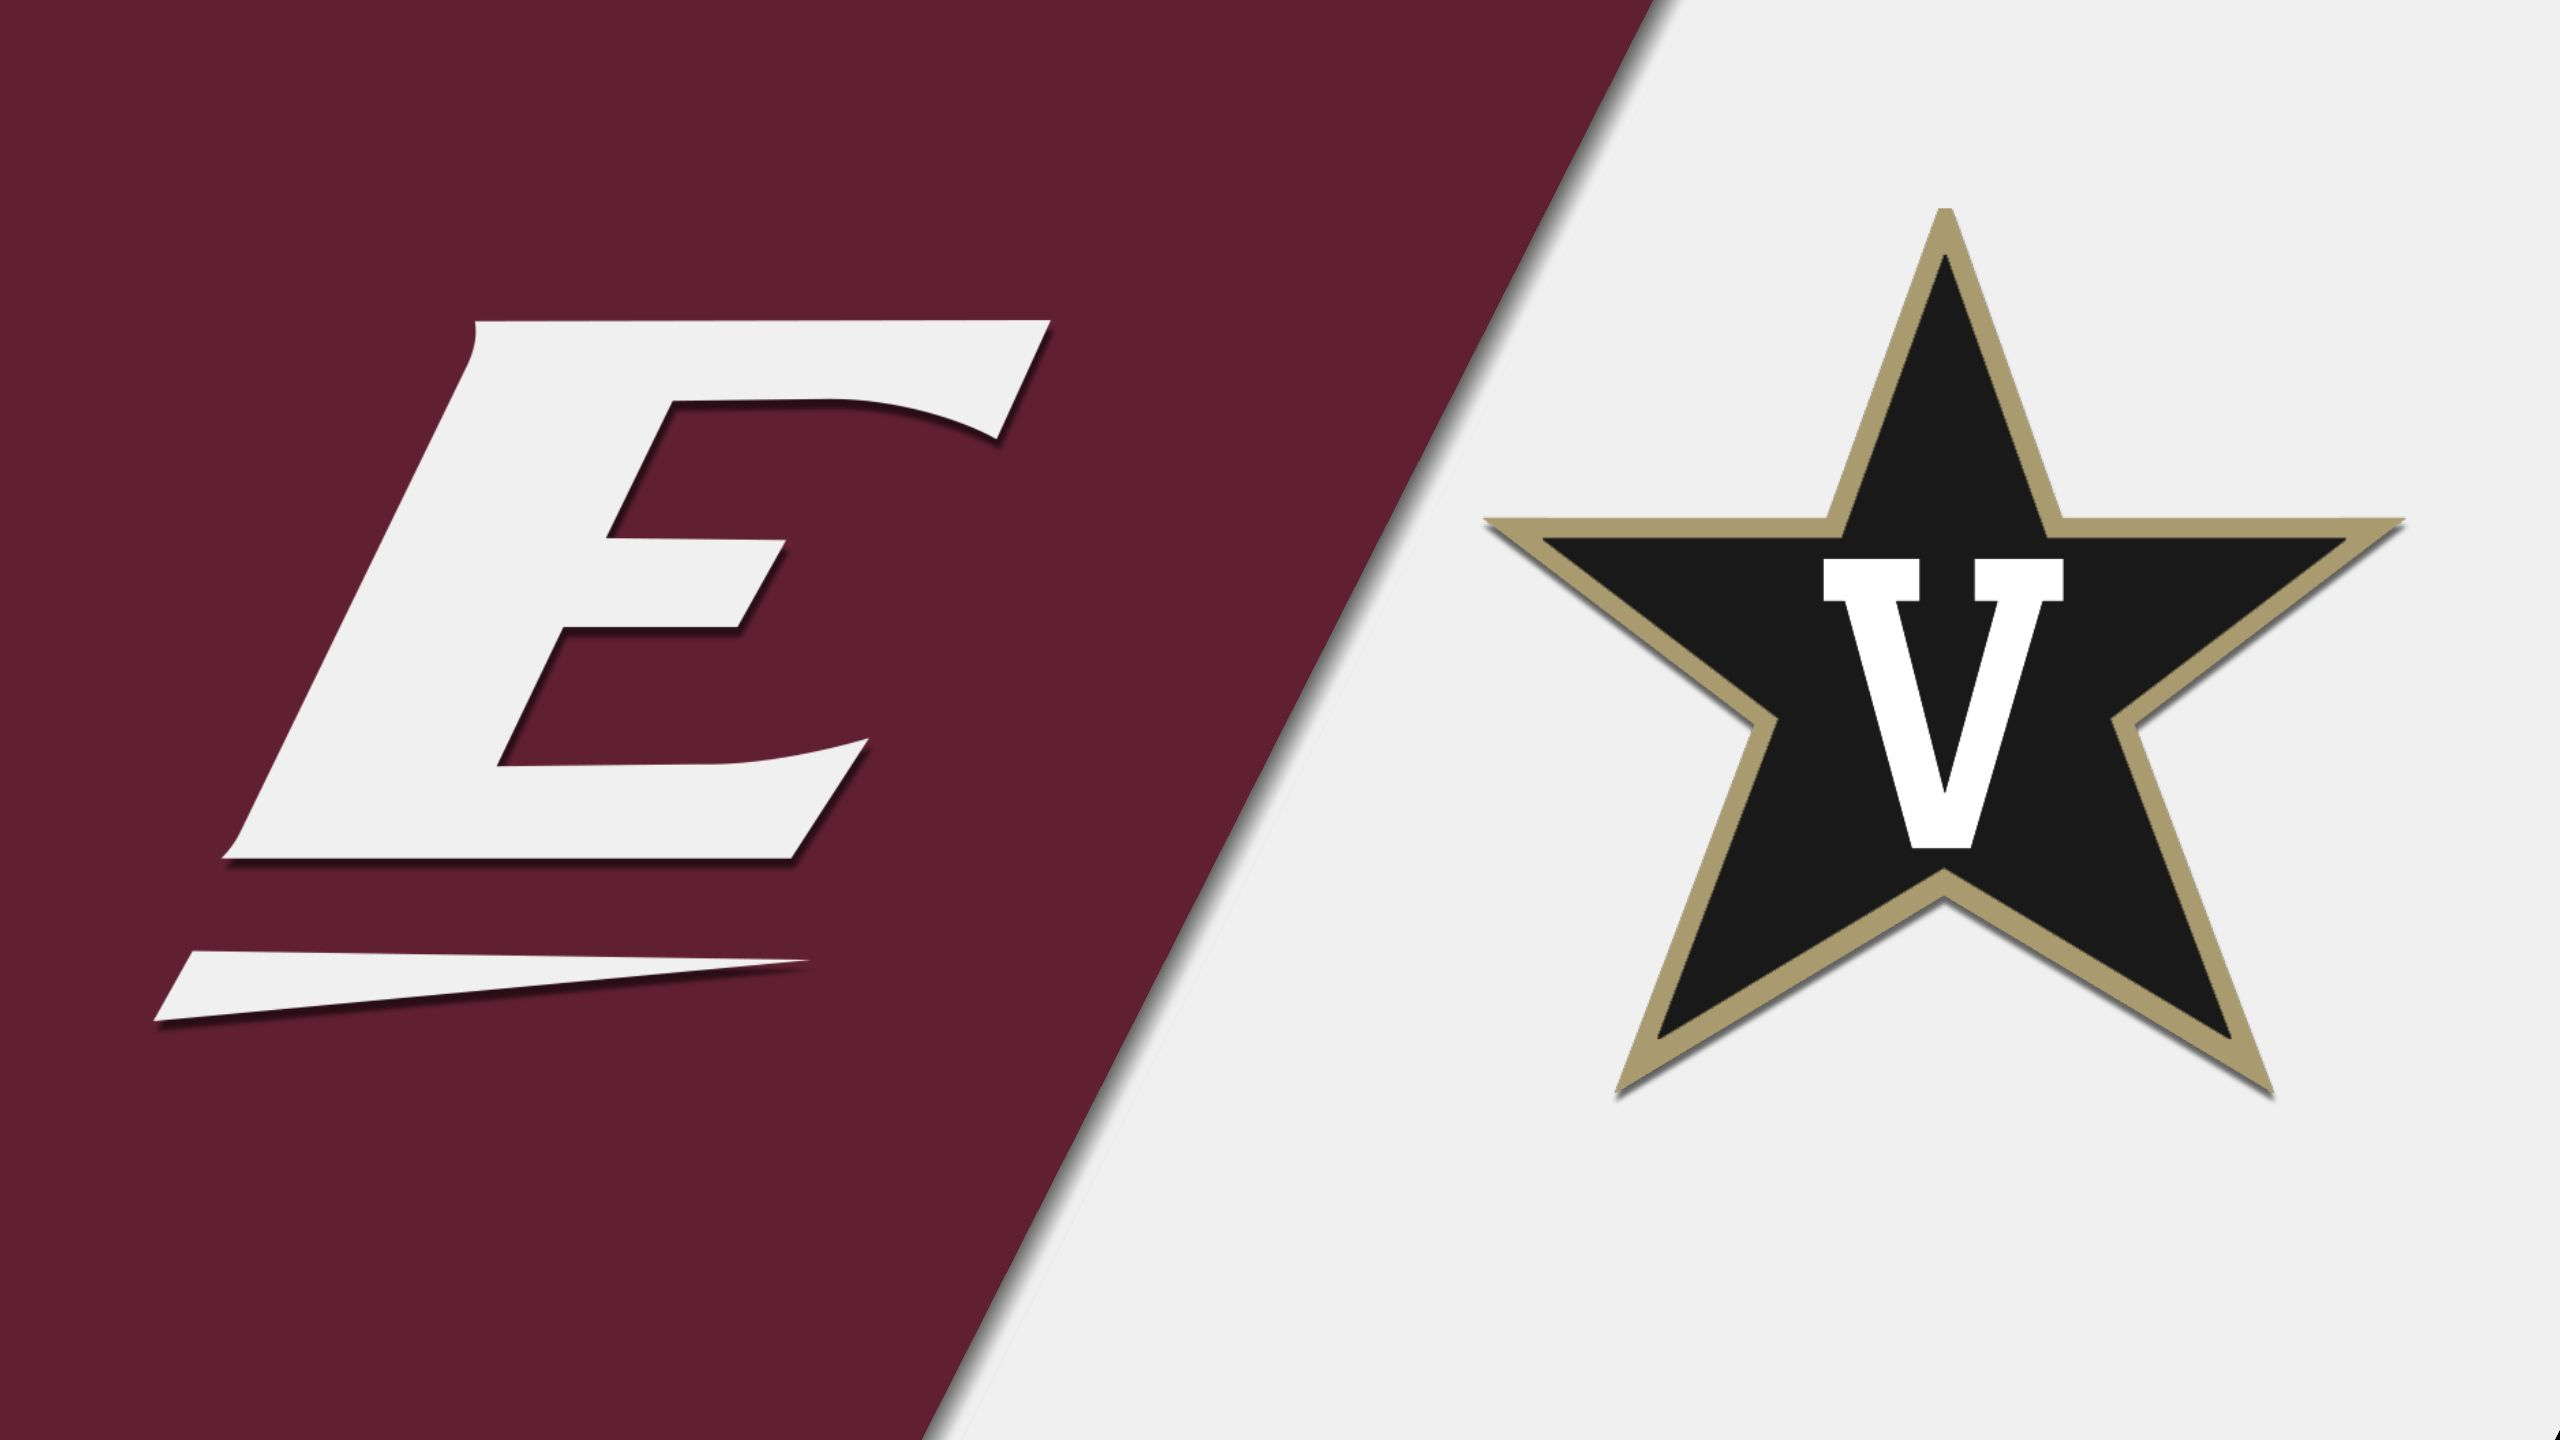 Eastern Kentucky vs. #13 Vanderbilt (Baseball)